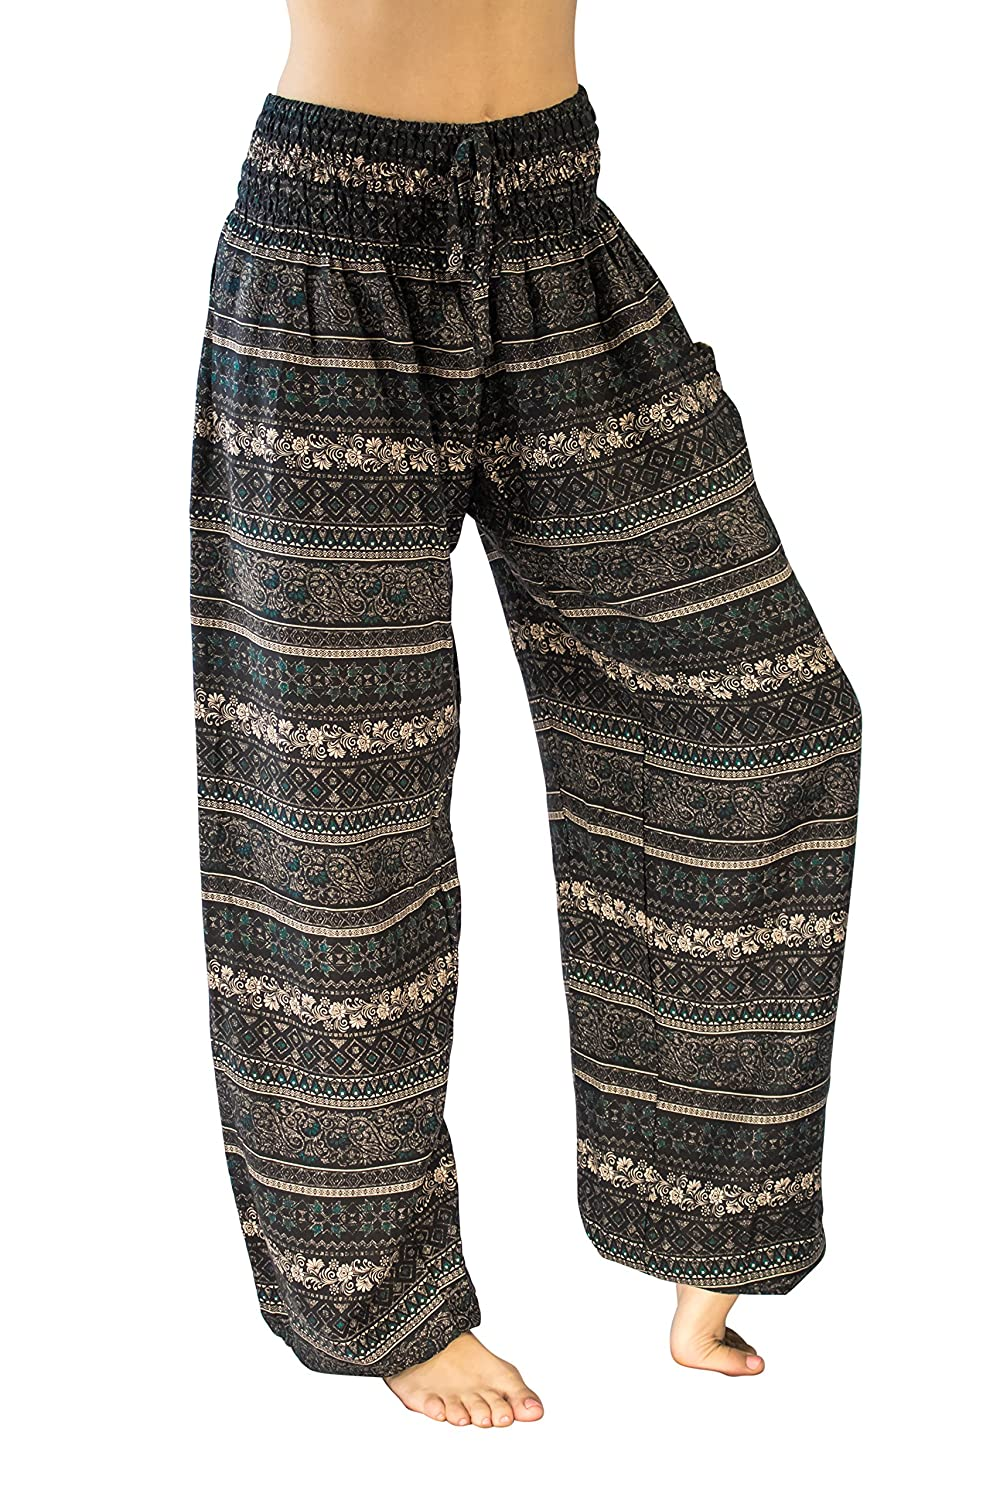 cdc0203717 Online Cheap wholesale PIYOGA - Womens Boutique Lounge and Bohemian Yoga  Pants, Scrunched Bottom (Stretches from US Size 0- Leggings Suppliers